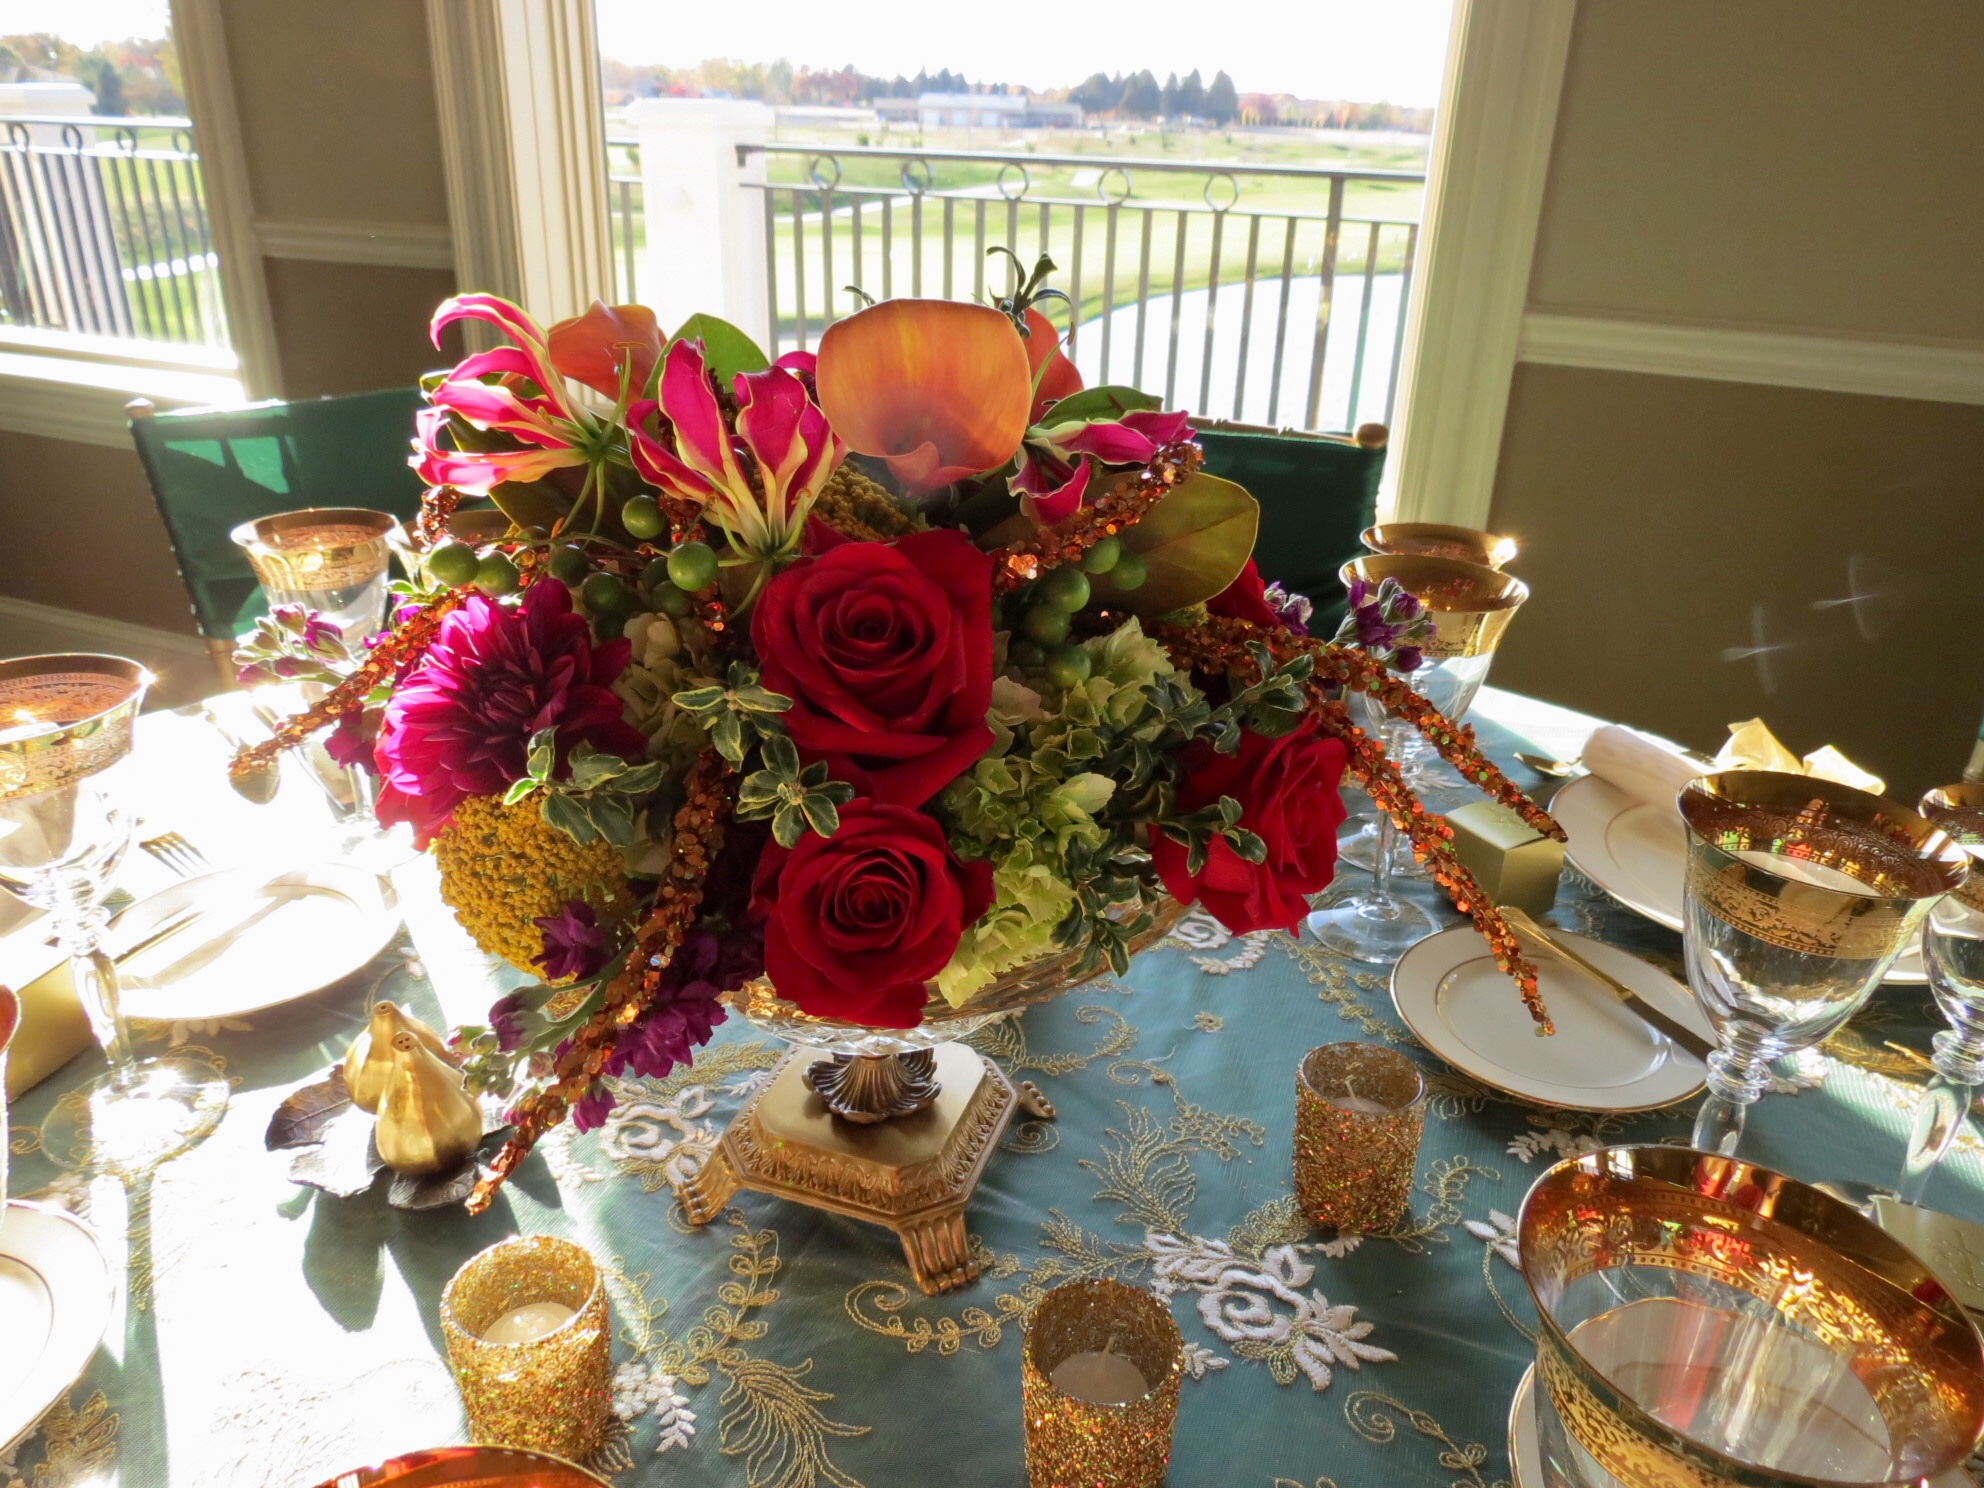 50th Anniversary Party at Metamora Fields // Linens, Floral Decor, & Table Settings by Michele's